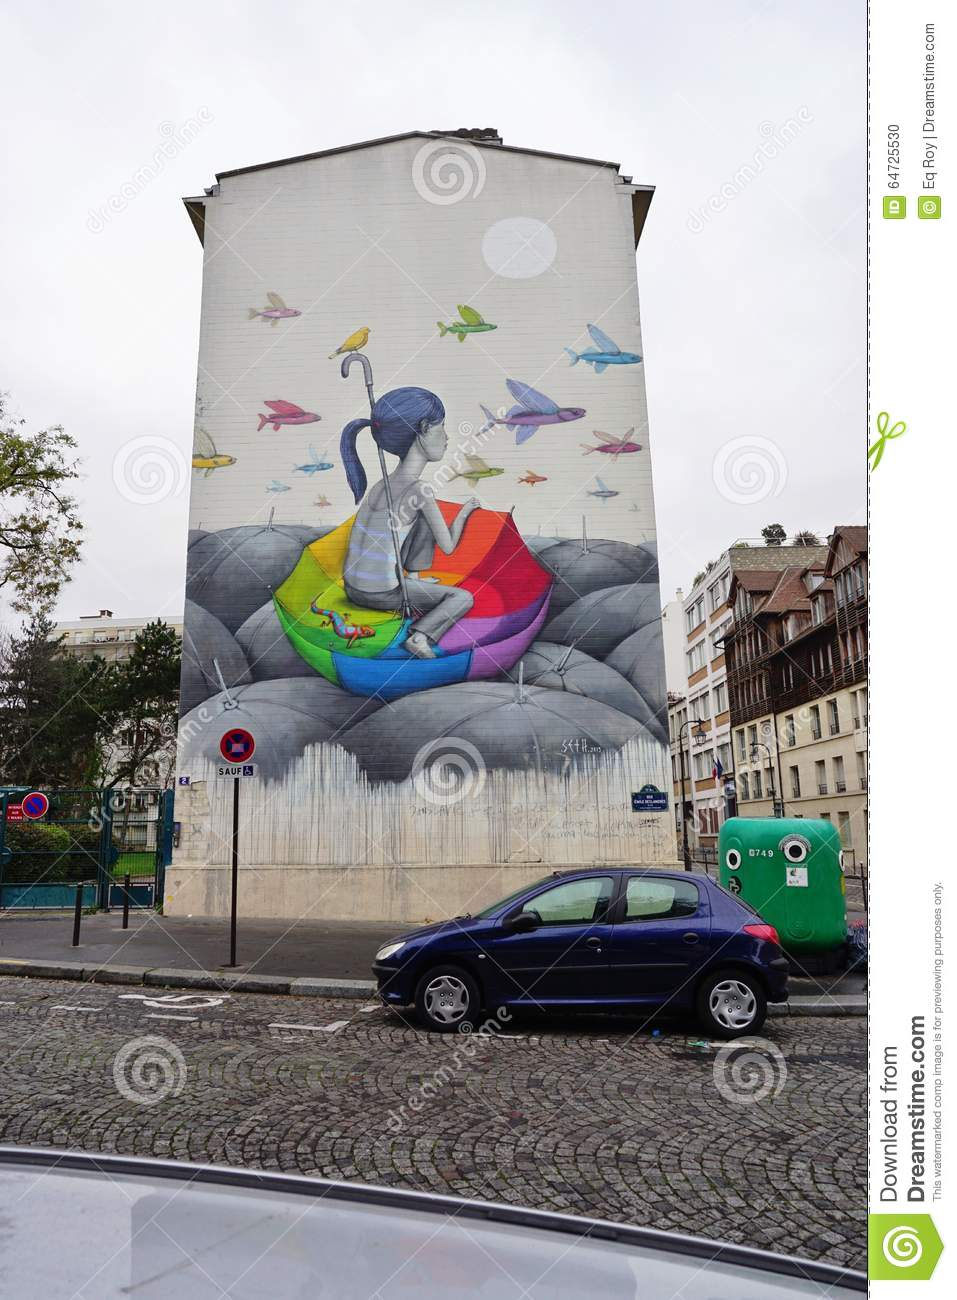 Wall mural painting by famous french street artist seth editorial stock photo download wall mural painting by famous french amipublicfo Image collections